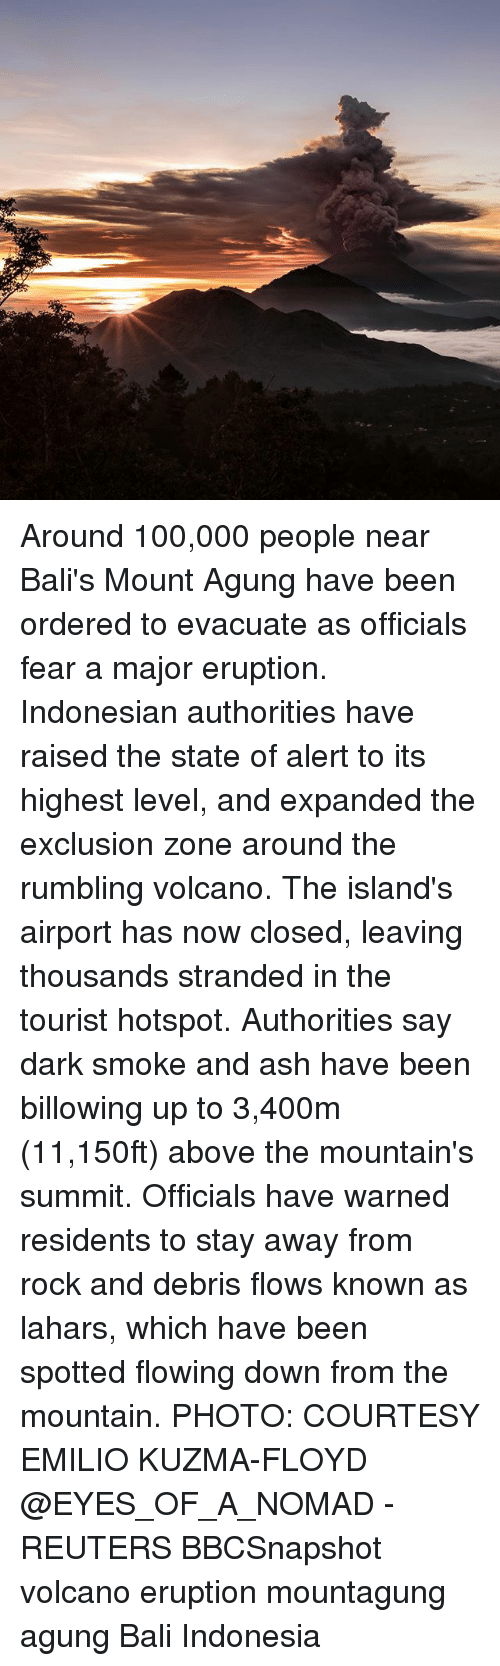 Indonesian: Around 100,000 people near Bali's Mount Agung have been ordered to evacuate as officials fear a major eruption. Indonesian authorities have raised the state of alert to its highest level, and expanded the exclusion zone around the rumbling volcano. The island's airport has now closed, leaving thousands stranded in the tourist hotspot. Authorities say dark smoke and ash have been billowing up to 3,400m (11,150ft) above the mountain's summit. Officials have warned residents to stay away from rock and debris flows known as lahars, which have been spotted flowing down from the mountain. PHOTO: COURTESY EMILIO KUZMA-FLOYD @EYES_OF_A_NOMAD - REUTERS BBCSnapshot volcano eruption mountagung agung Bali Indonesia